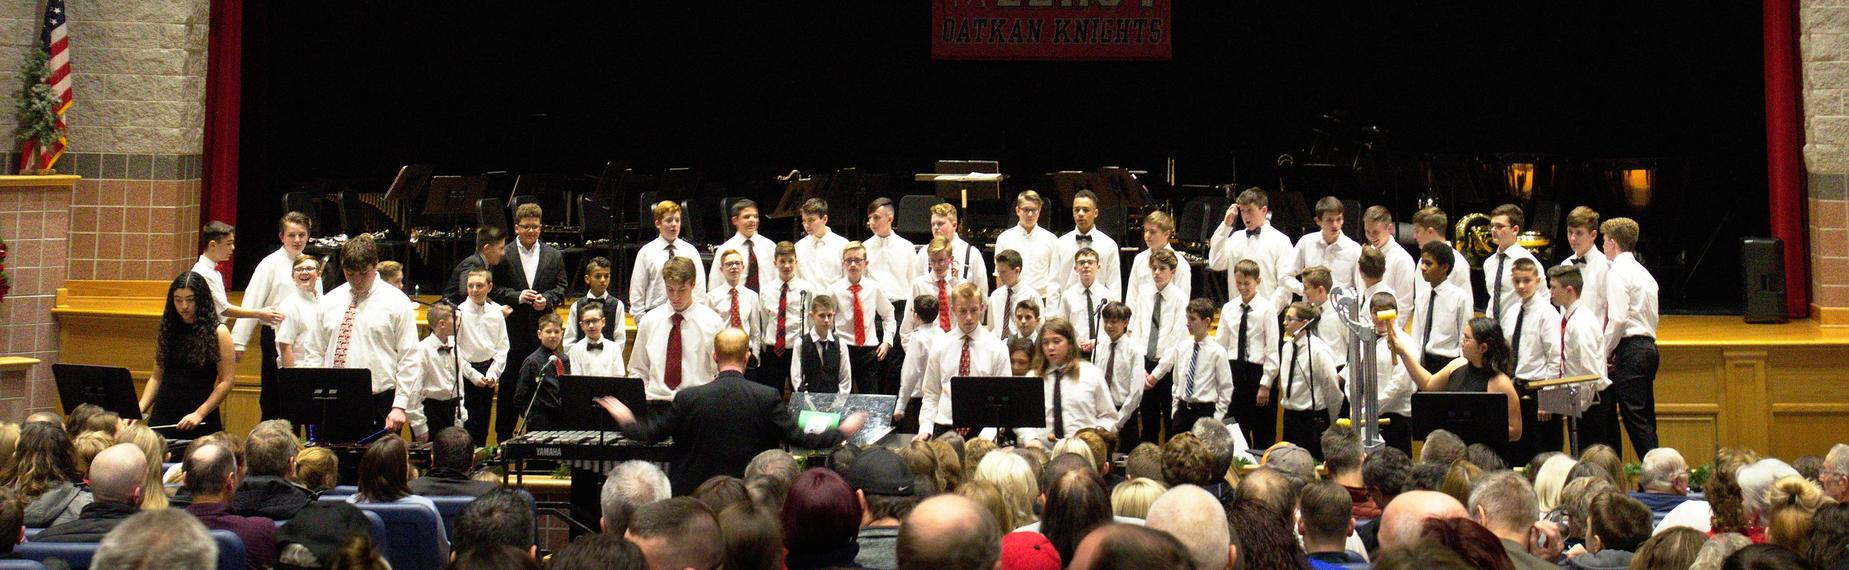 2018 Jr/Sr High Christmas Concert